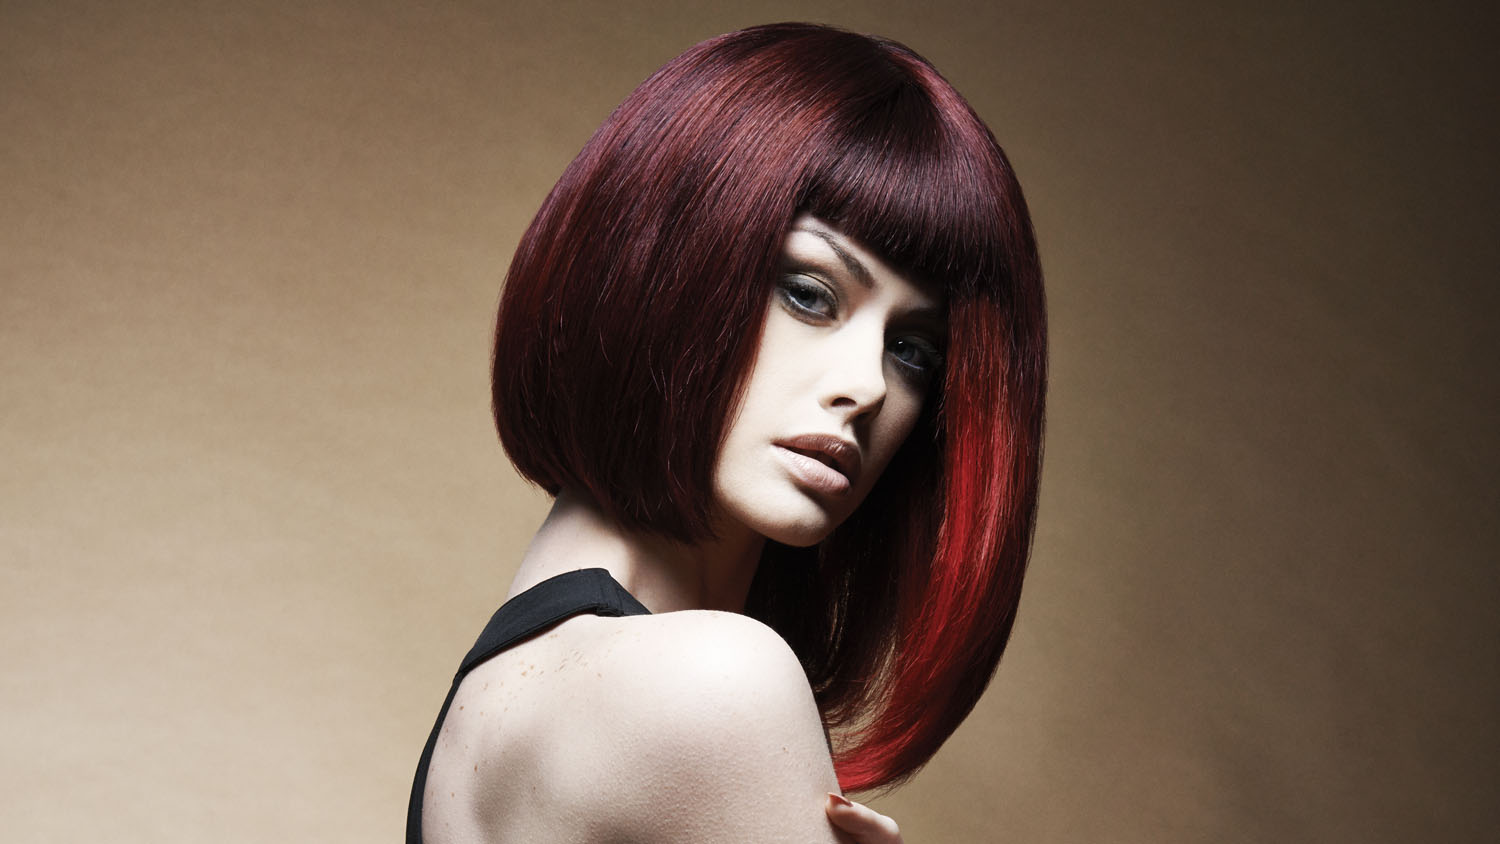 yoshikohair_stkilda_melbourne_hairdresser_hairsalon_treatments_redhair